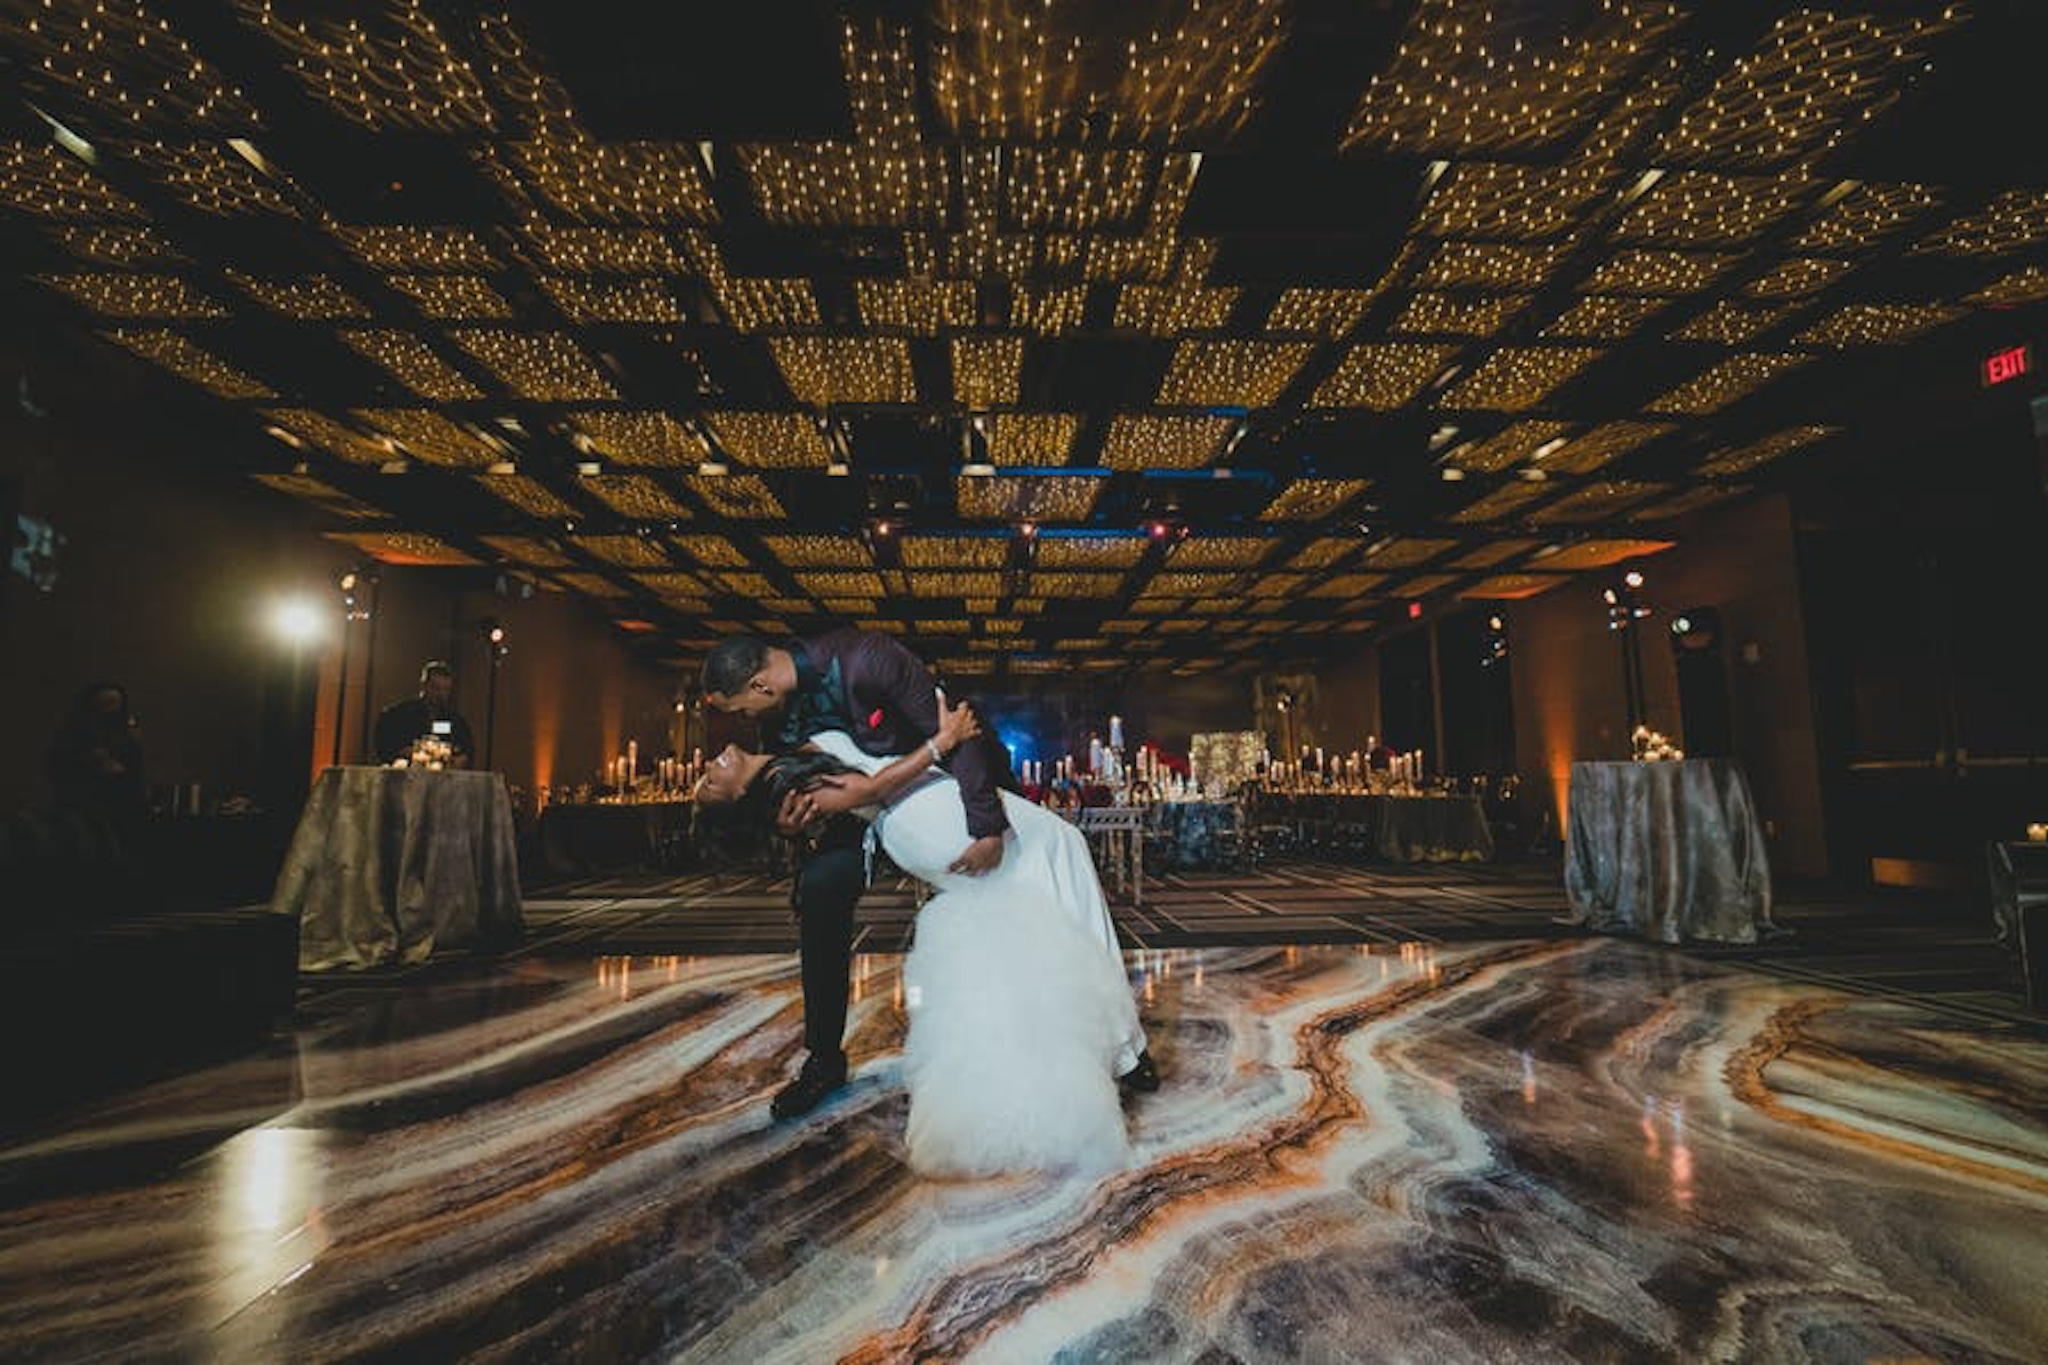 Couple dancing under twinkly lights